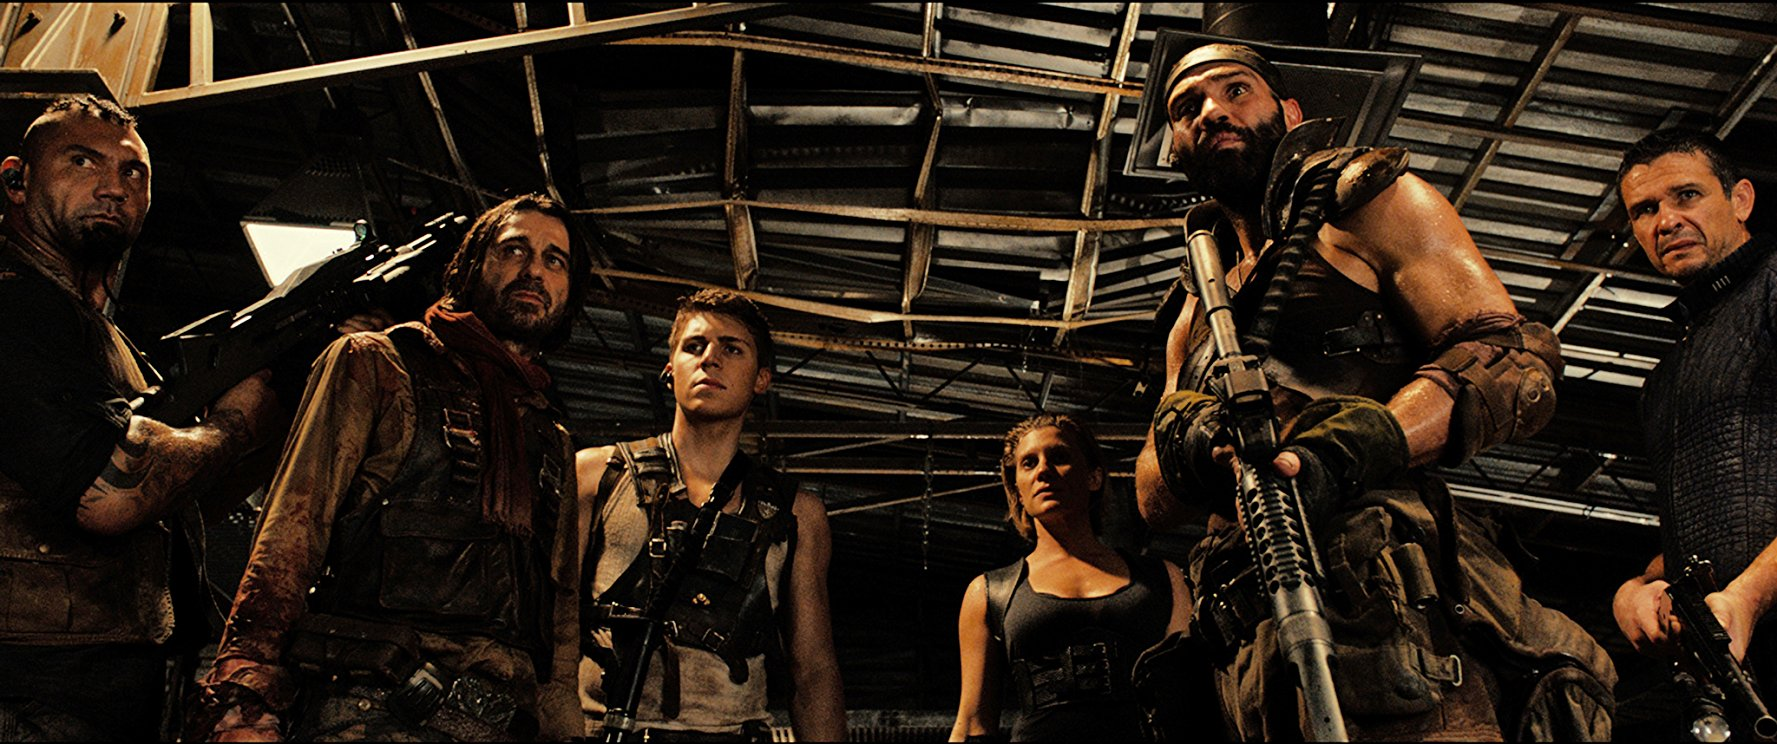 The pursuing mercenaries - (l to r) Dave Bautista, Nolan Gerard Funk, Jordi Mollà, Katee Sackhoff, Conrad Pla and Matt Nable in Riddick (2013)